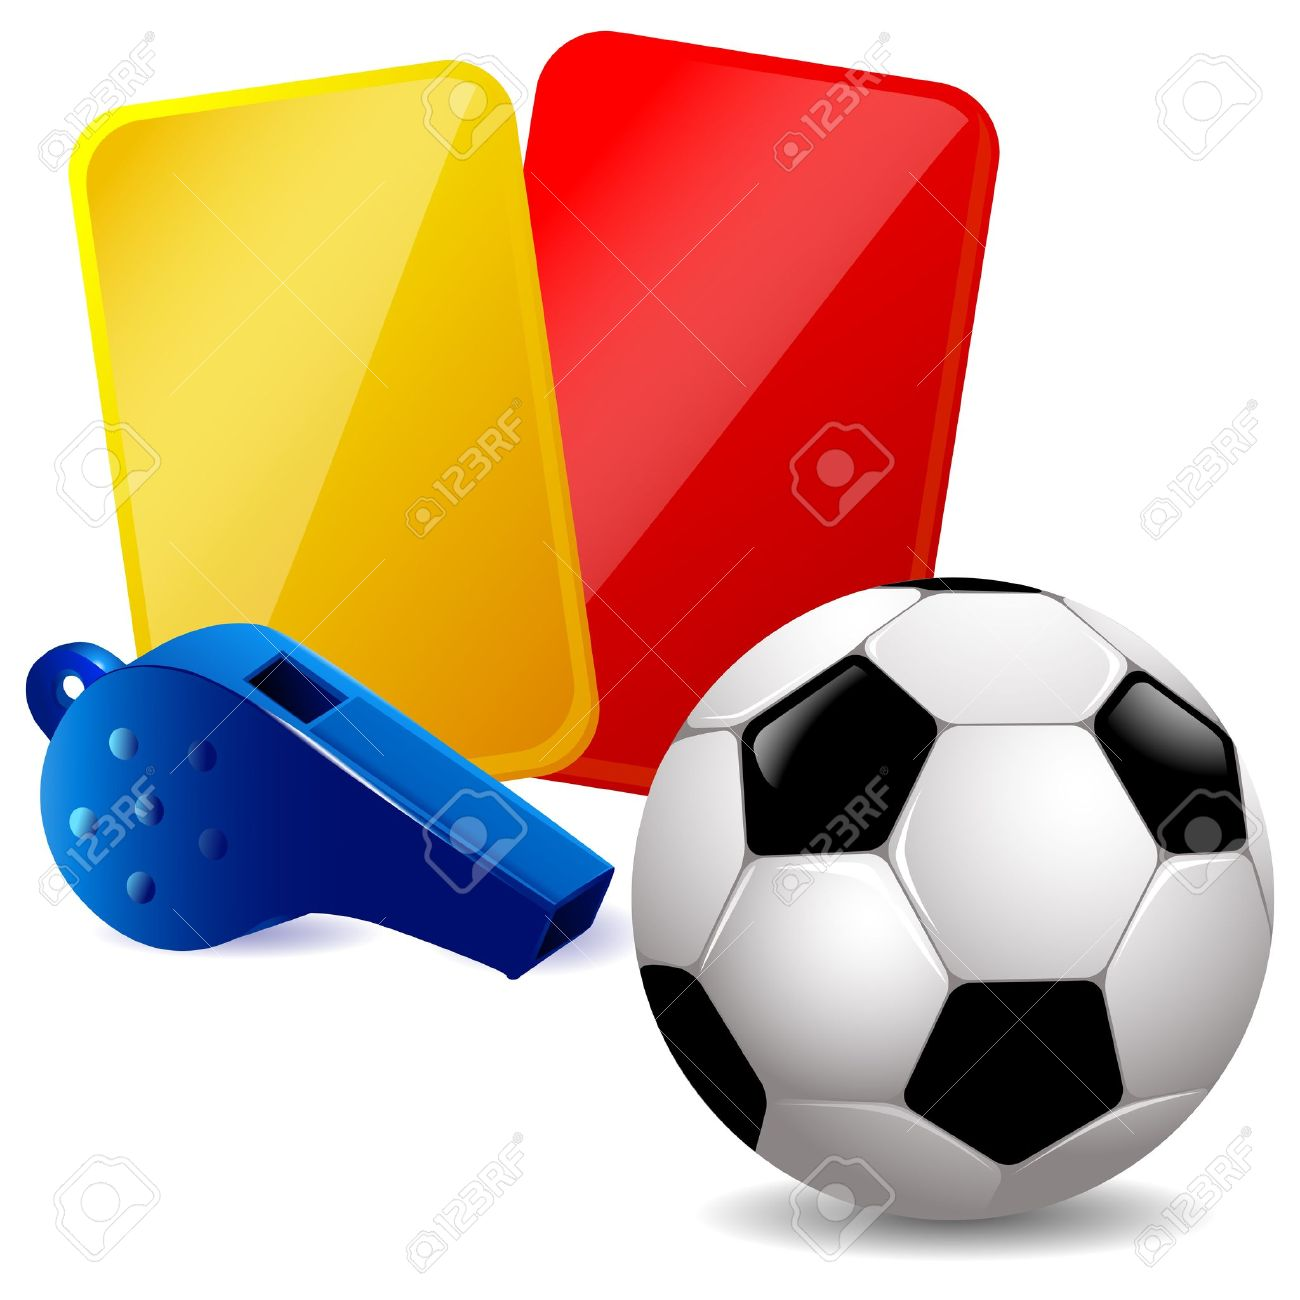 Soccer ball, whistle and red and yellow cards - 13813490